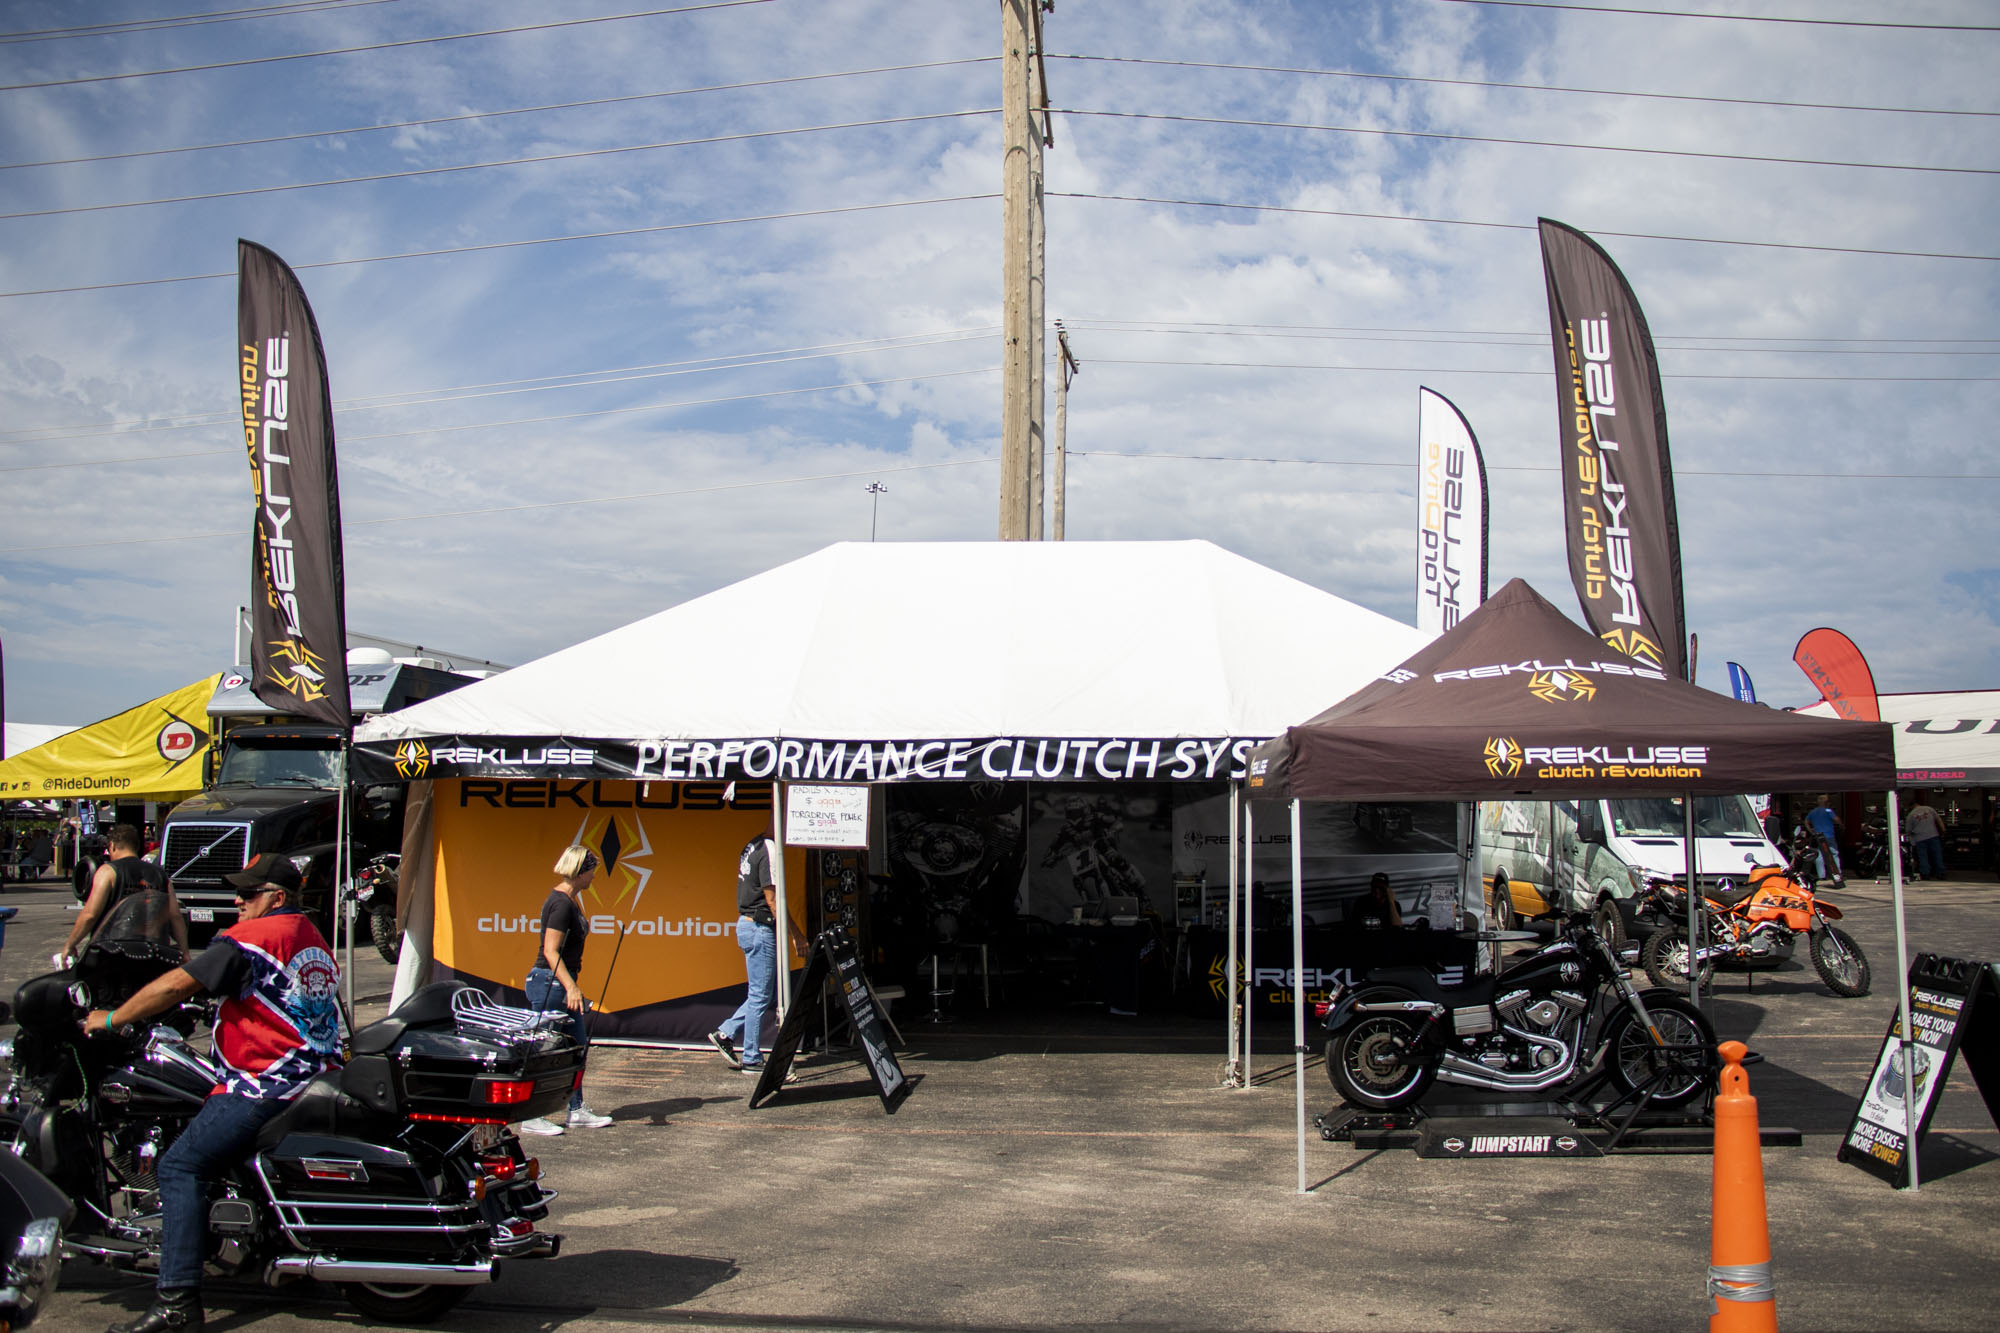 Rekluse booth at Sturgis Rally